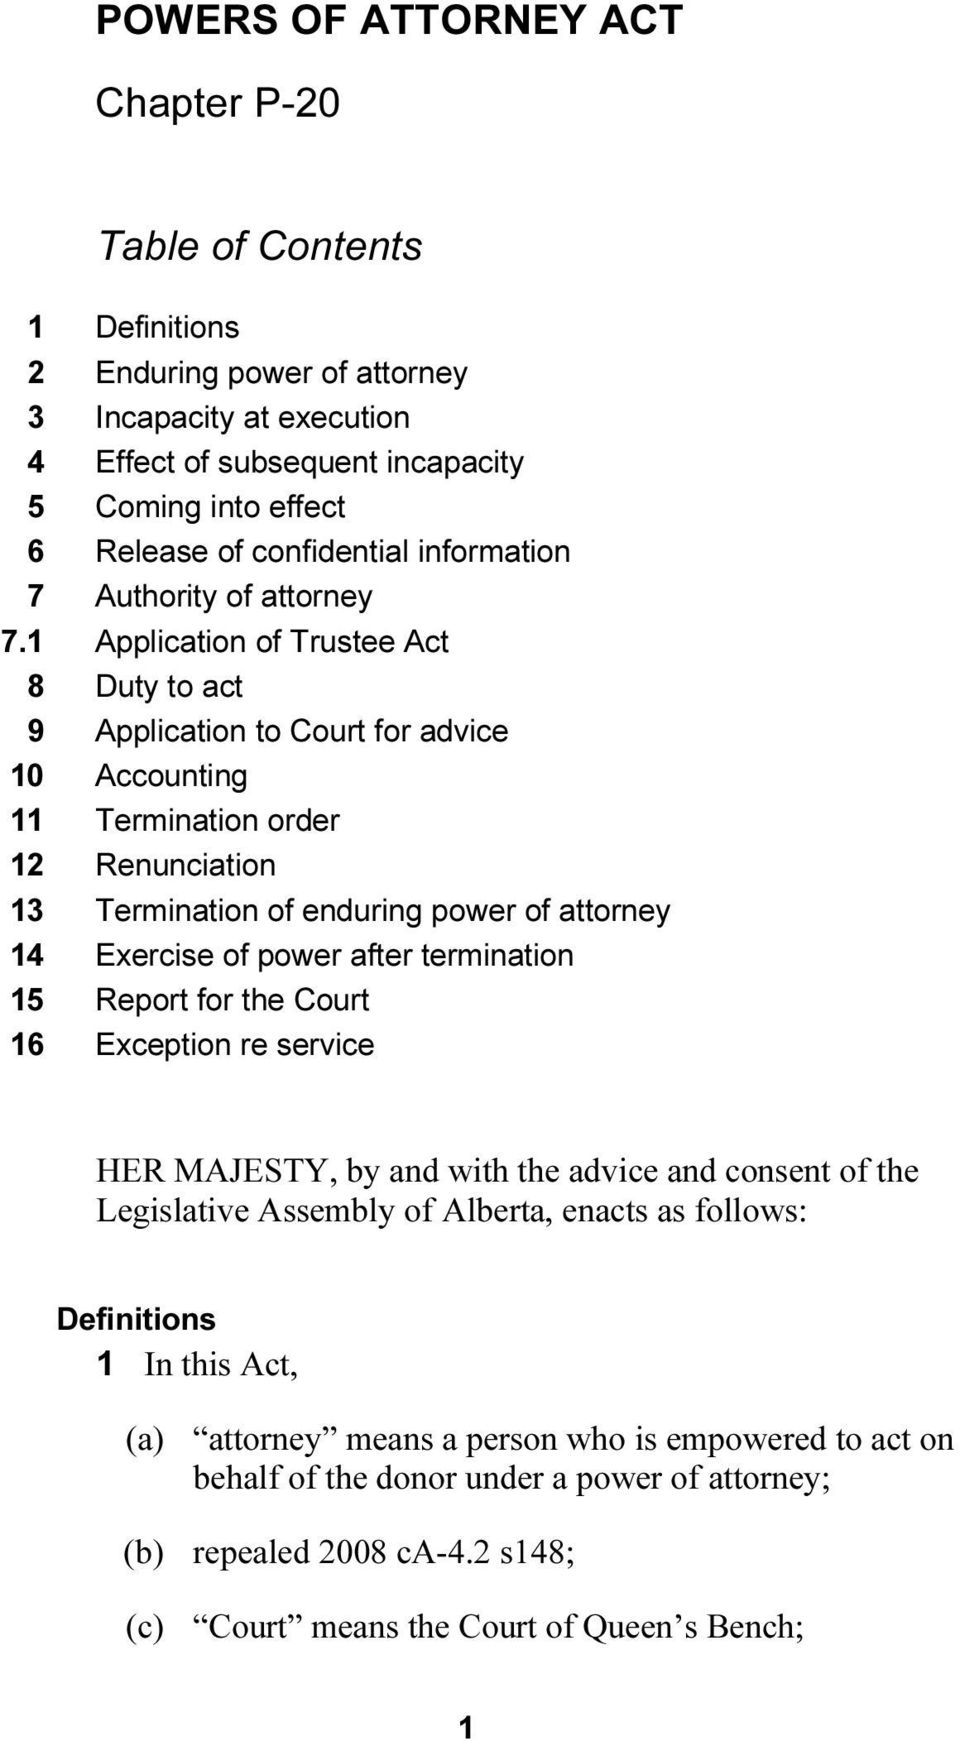 1 Application of Trustee Act 8 Duty to act 9 Application to Court for advice 10 Accounting 11 Termination order 12 Renunciation 13 Termination of enduring power of attorney 14 Exercise of power after